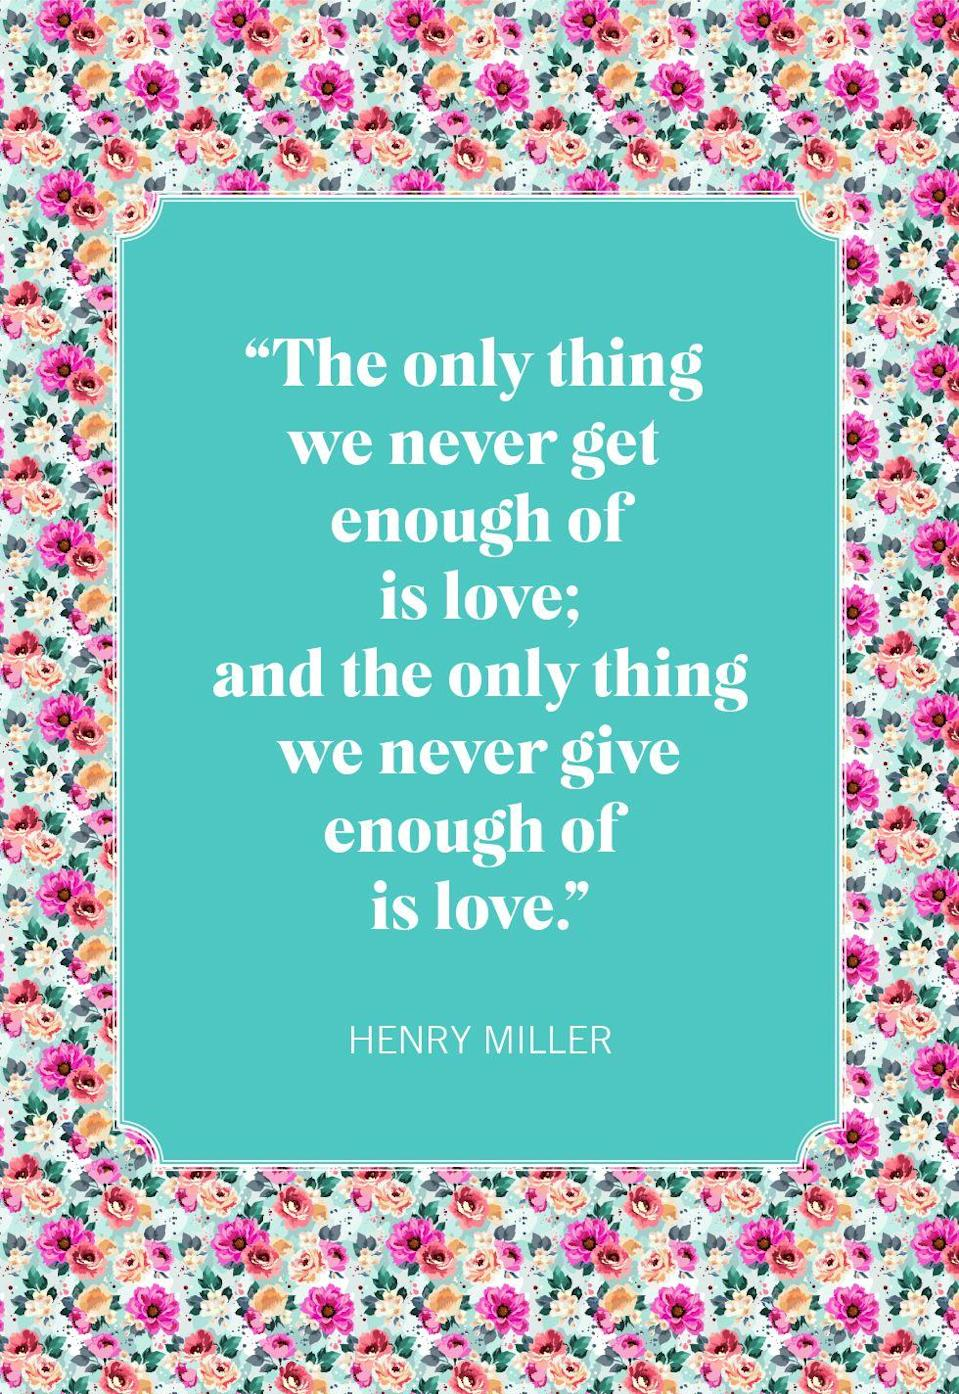 "<p>""The only thing we never get enough of is love; and the only thing we never give enough of is love.""</p>"